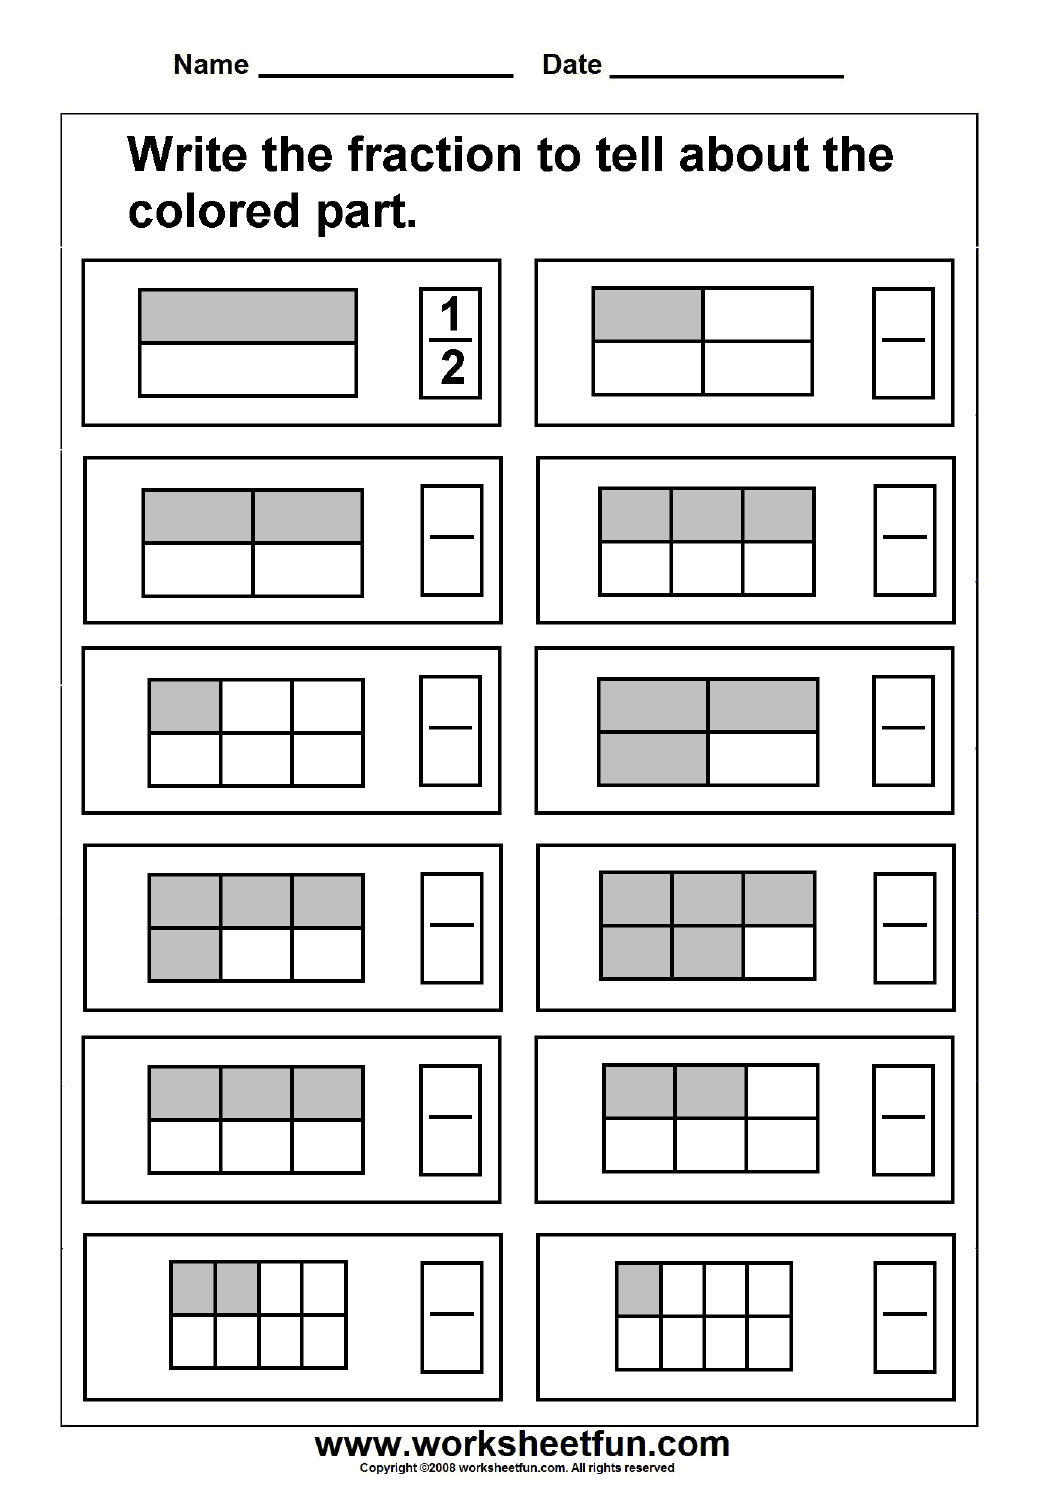 Fraction FREE Printable Worksheets Worksheetfun – Fractions Worksheets for Kids